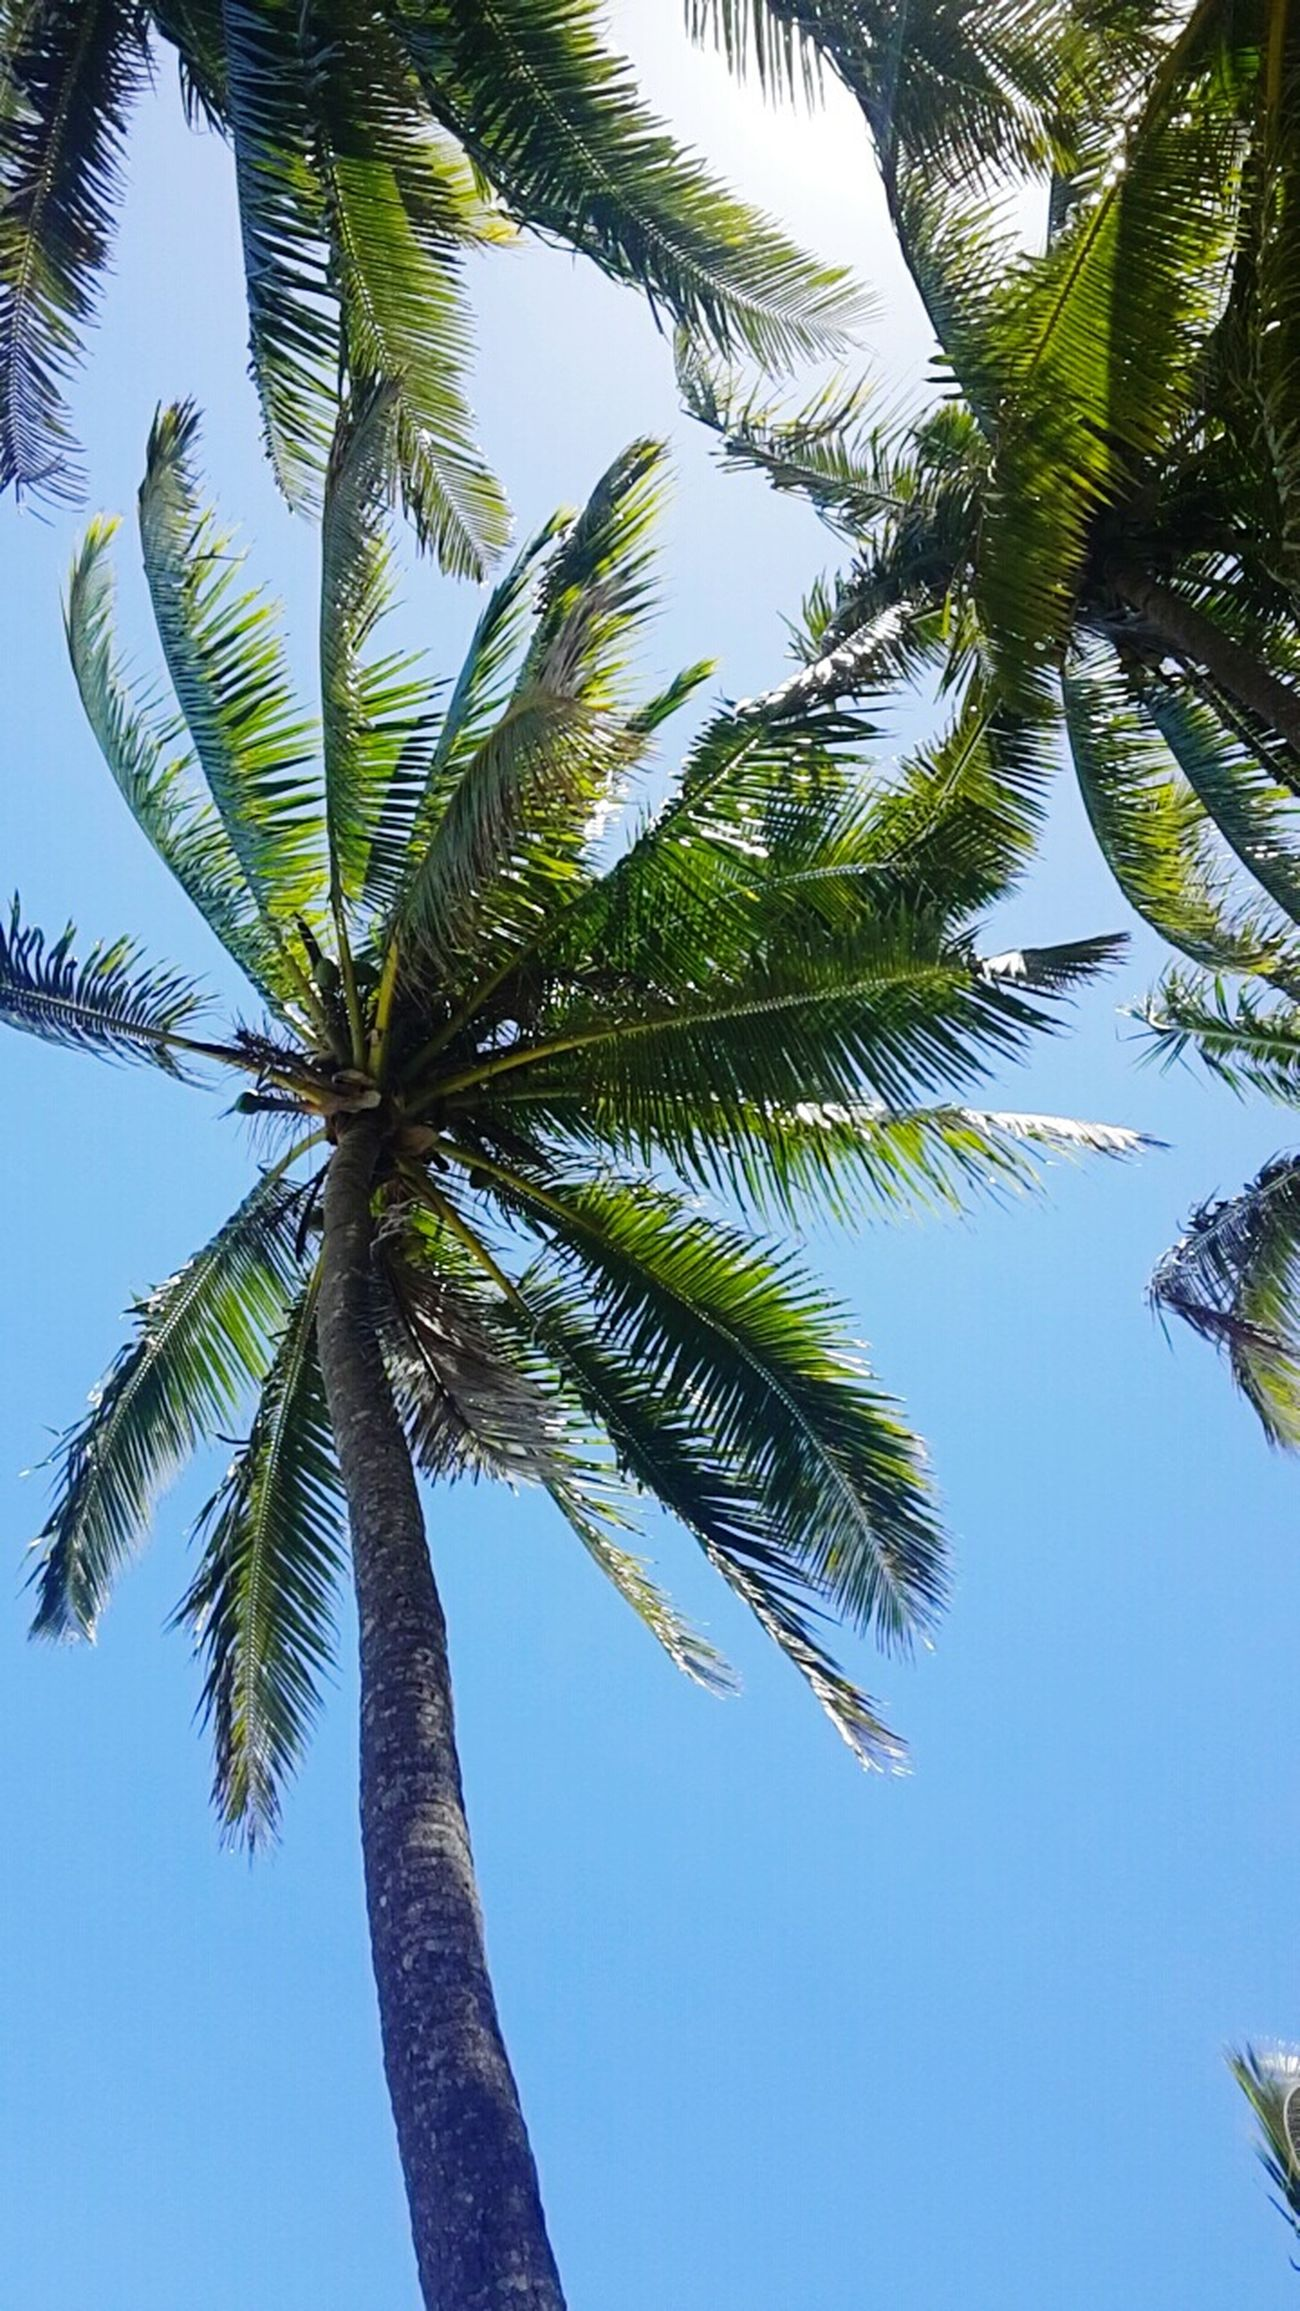 Blue Skies ⛅ Photography Fiji ❤🌴 Pacificharbor Relaxing Check This Out